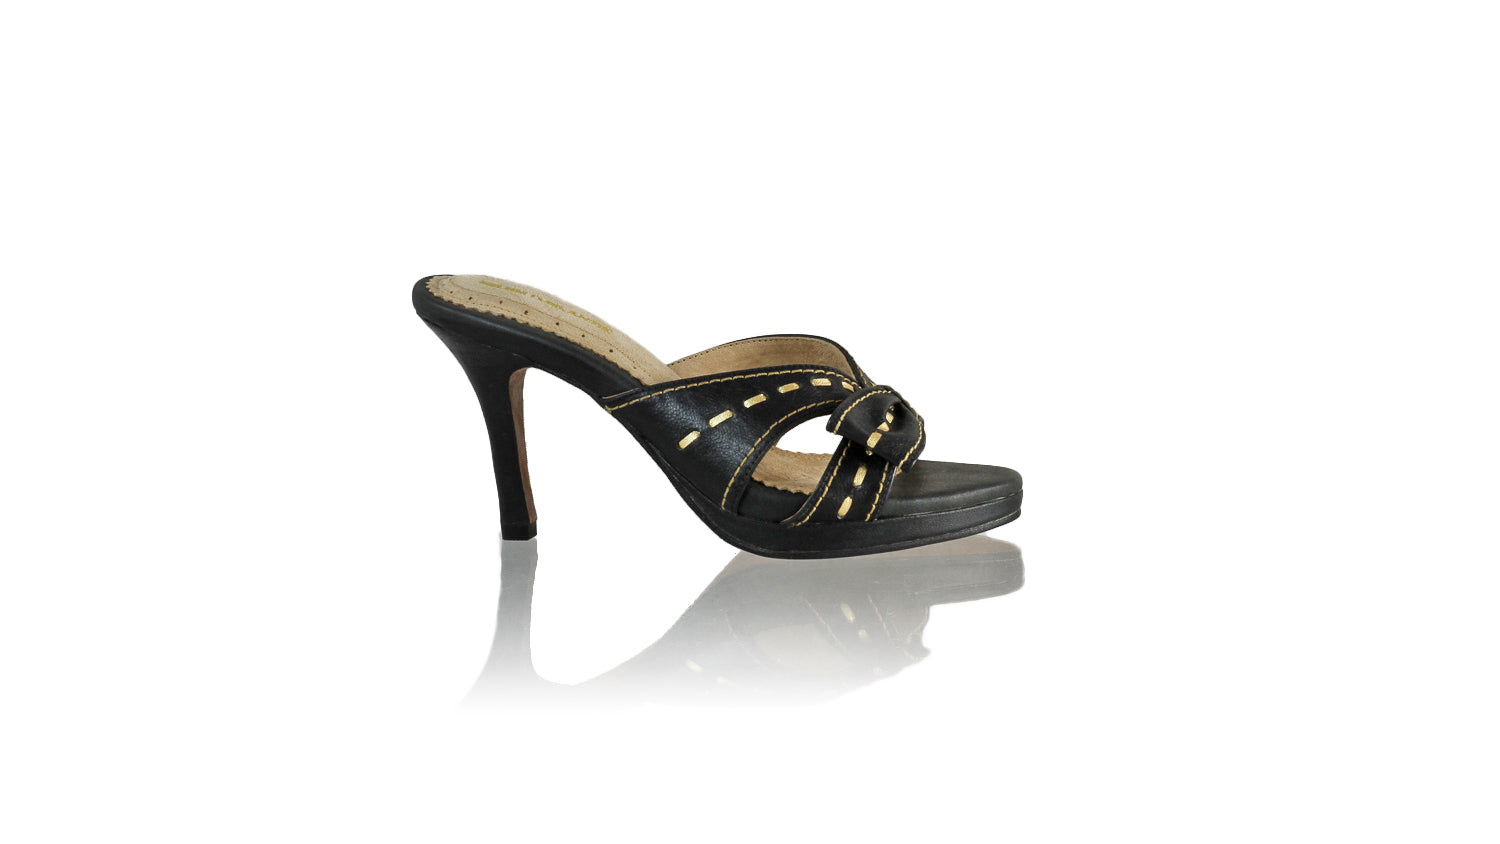 Leather-shoes-Sri 90mm SH PF - Black & Gold-sandals higheel-NILUH DJELANTIK-NILUH DJELANTIK